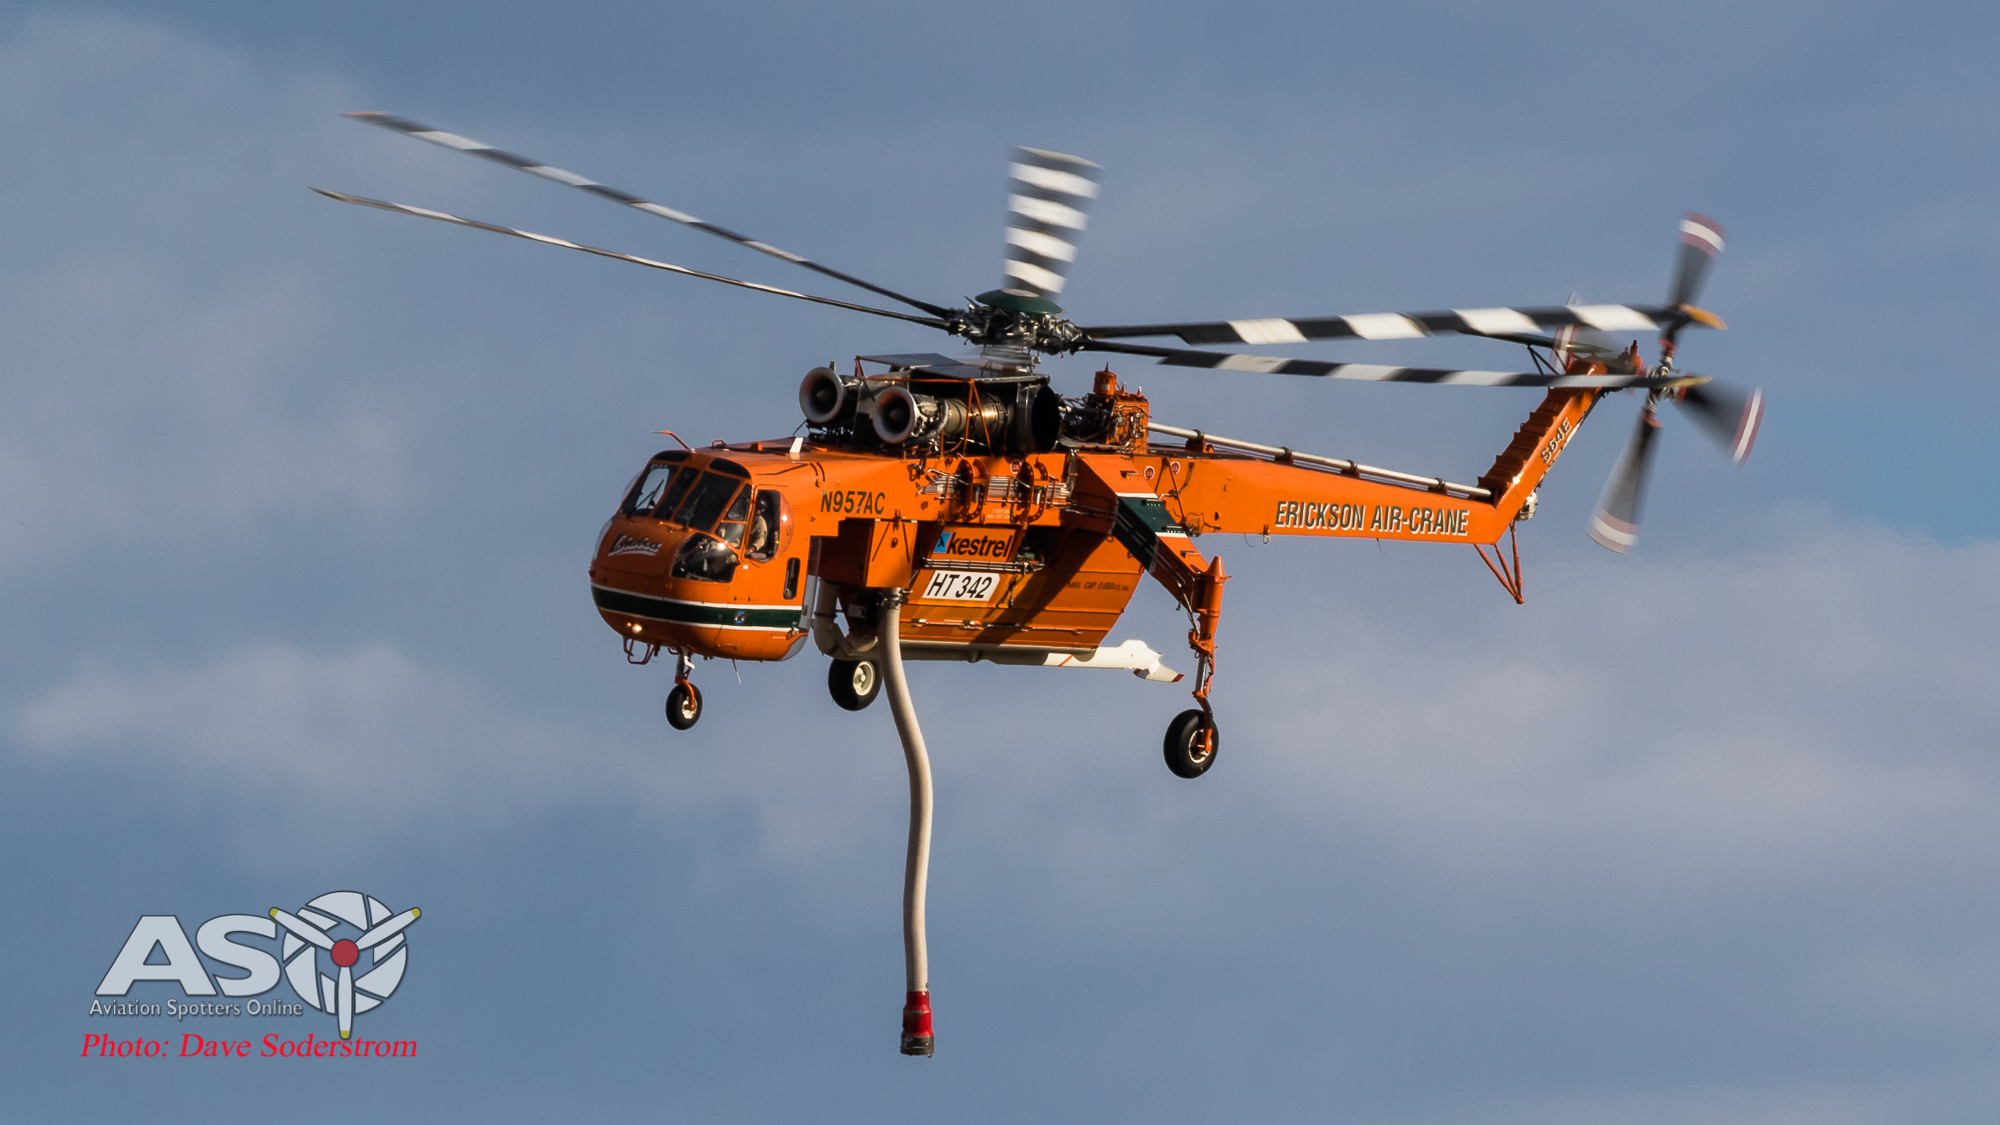 Erickson Celebrates 20 years of Fire Fighting operations in Australia